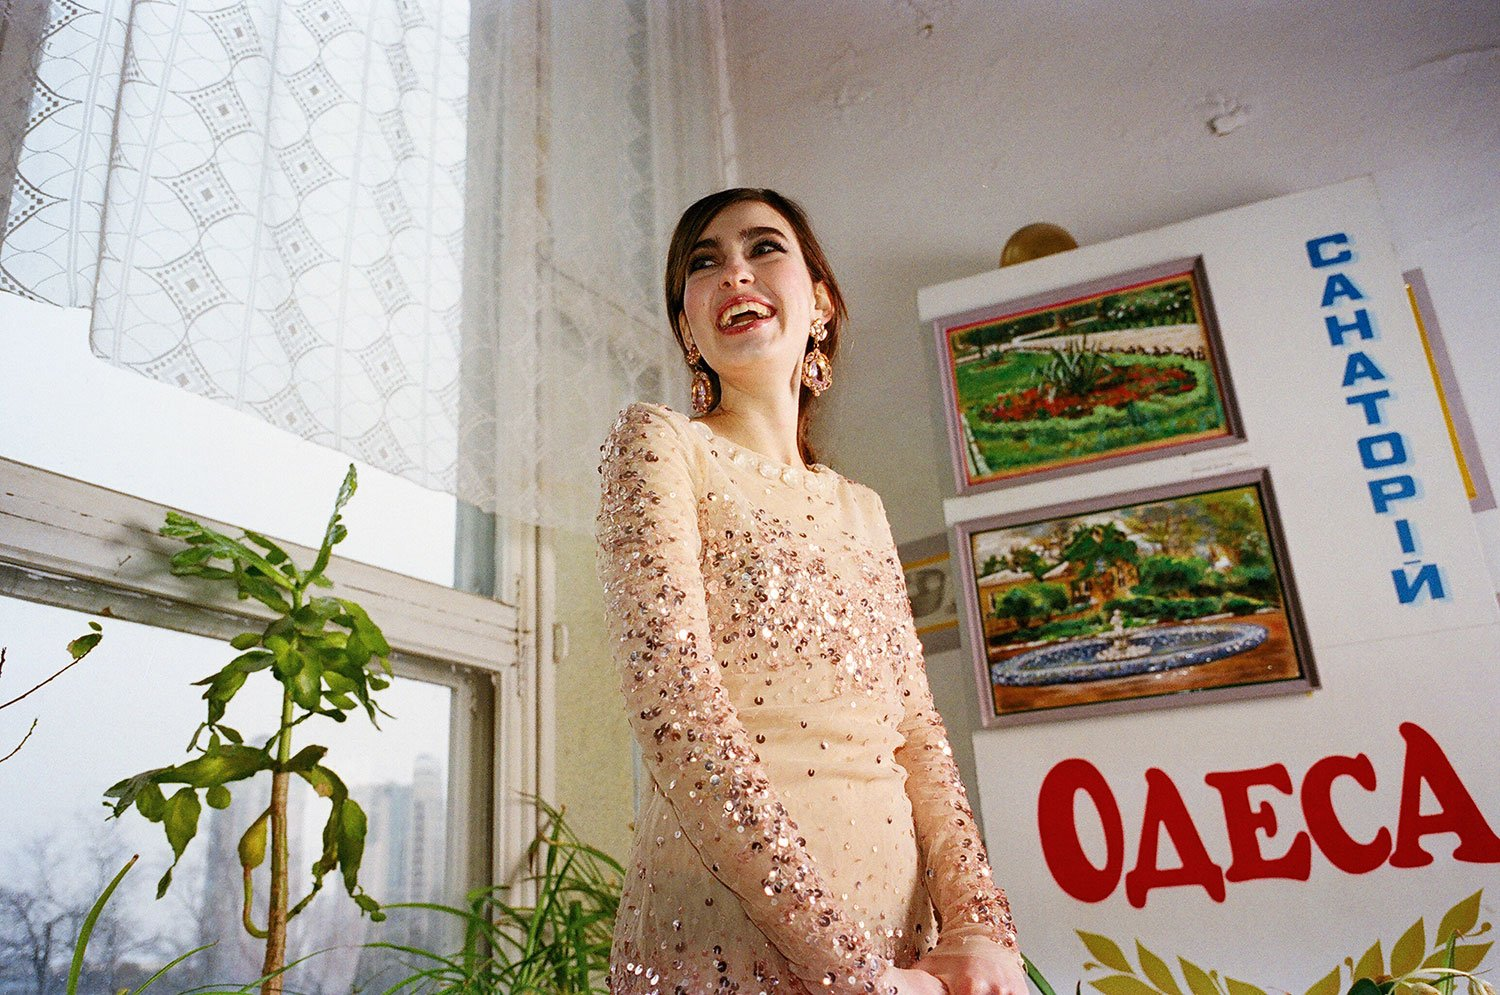 Vintage charm: three female photographers capture the beauty of Odessa